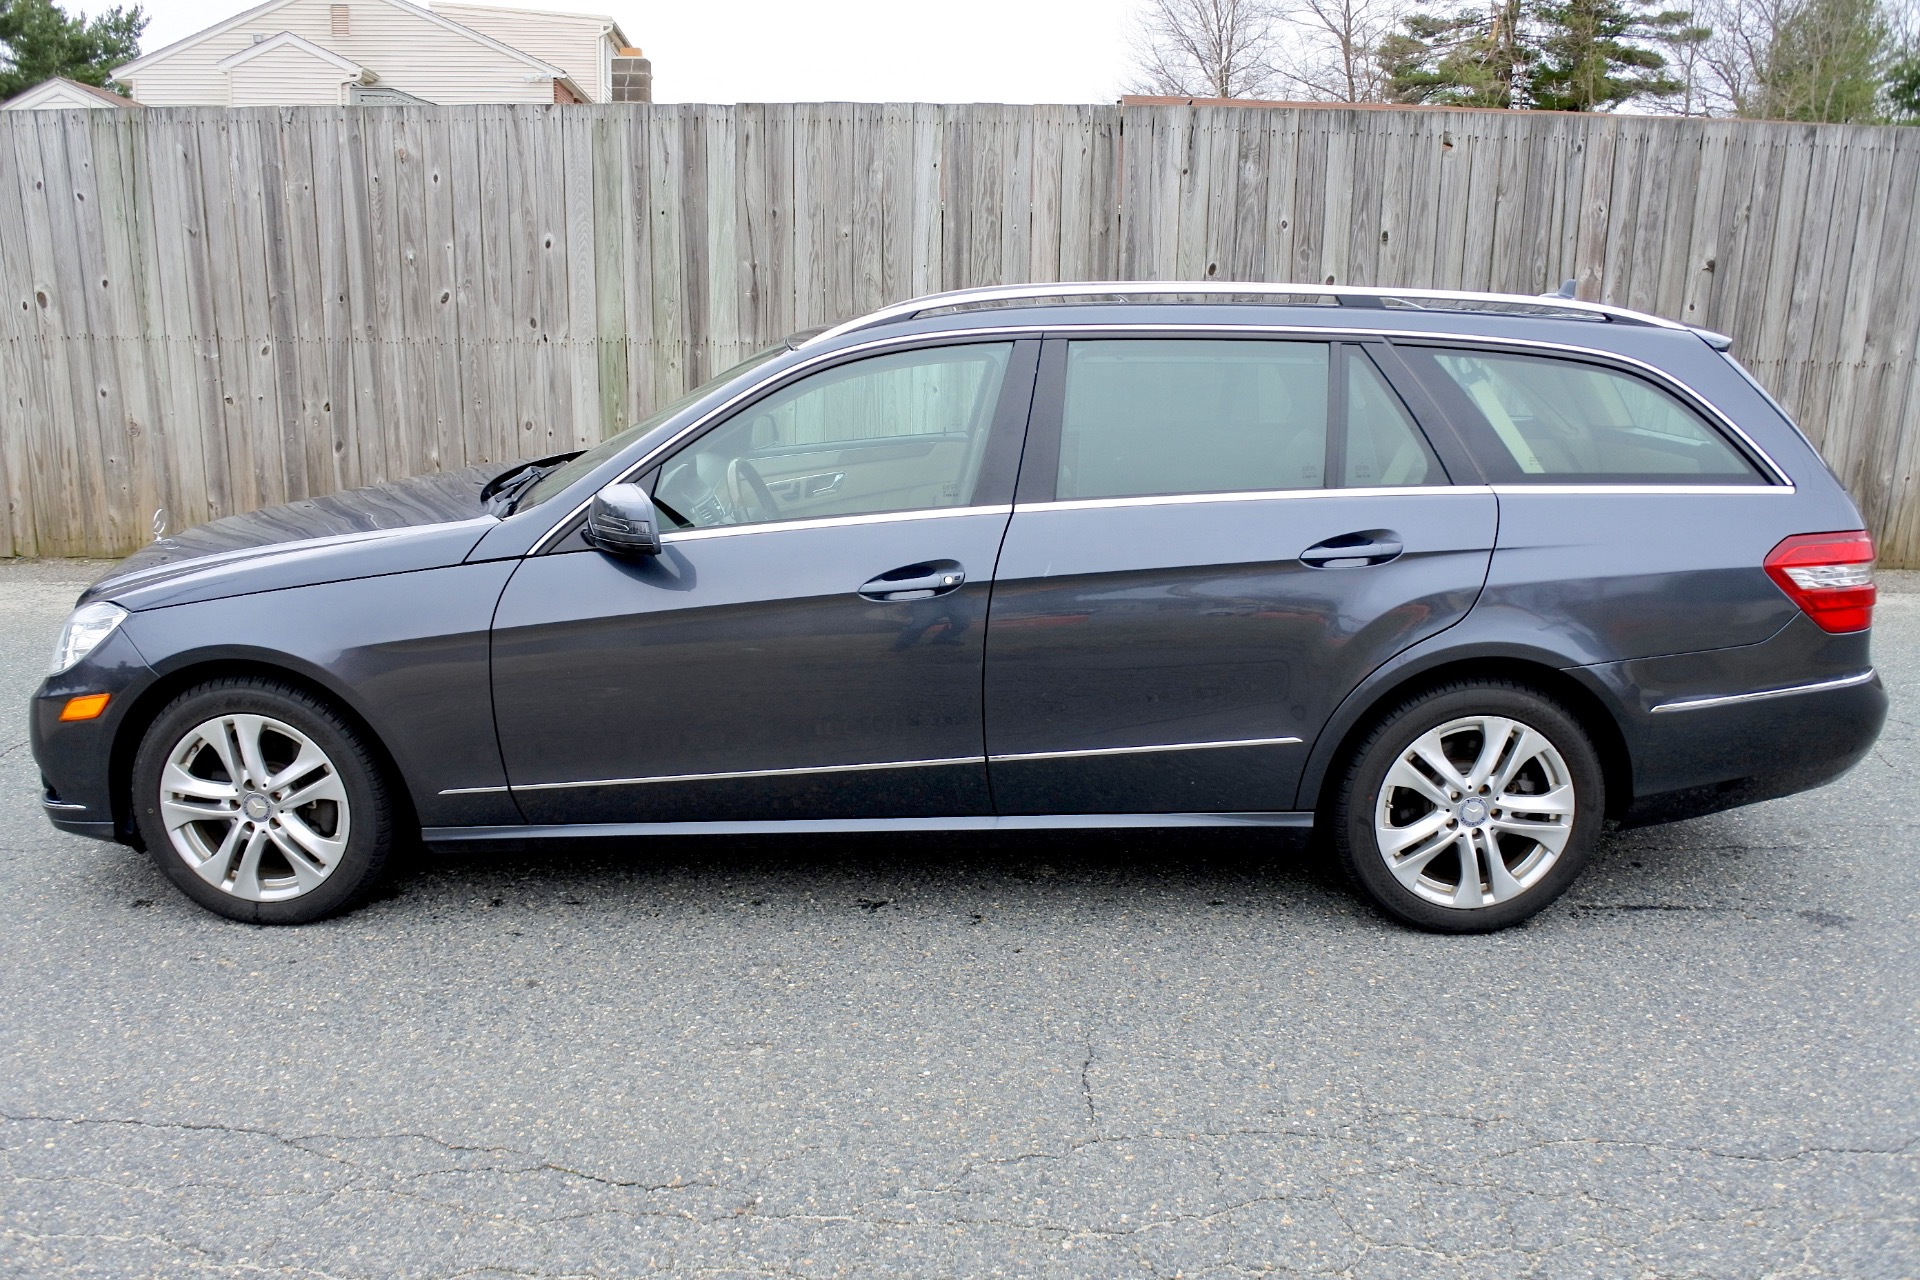 Used 2011 Mercedes-Benz E-Class 4dr Wgn E350 Luxury 4MATIC Used 2011 Mercedes-Benz E-Class 4dr Wgn E350 Luxury 4MATIC for sale  at Metro West Motorcars LLC in Shrewsbury MA 2